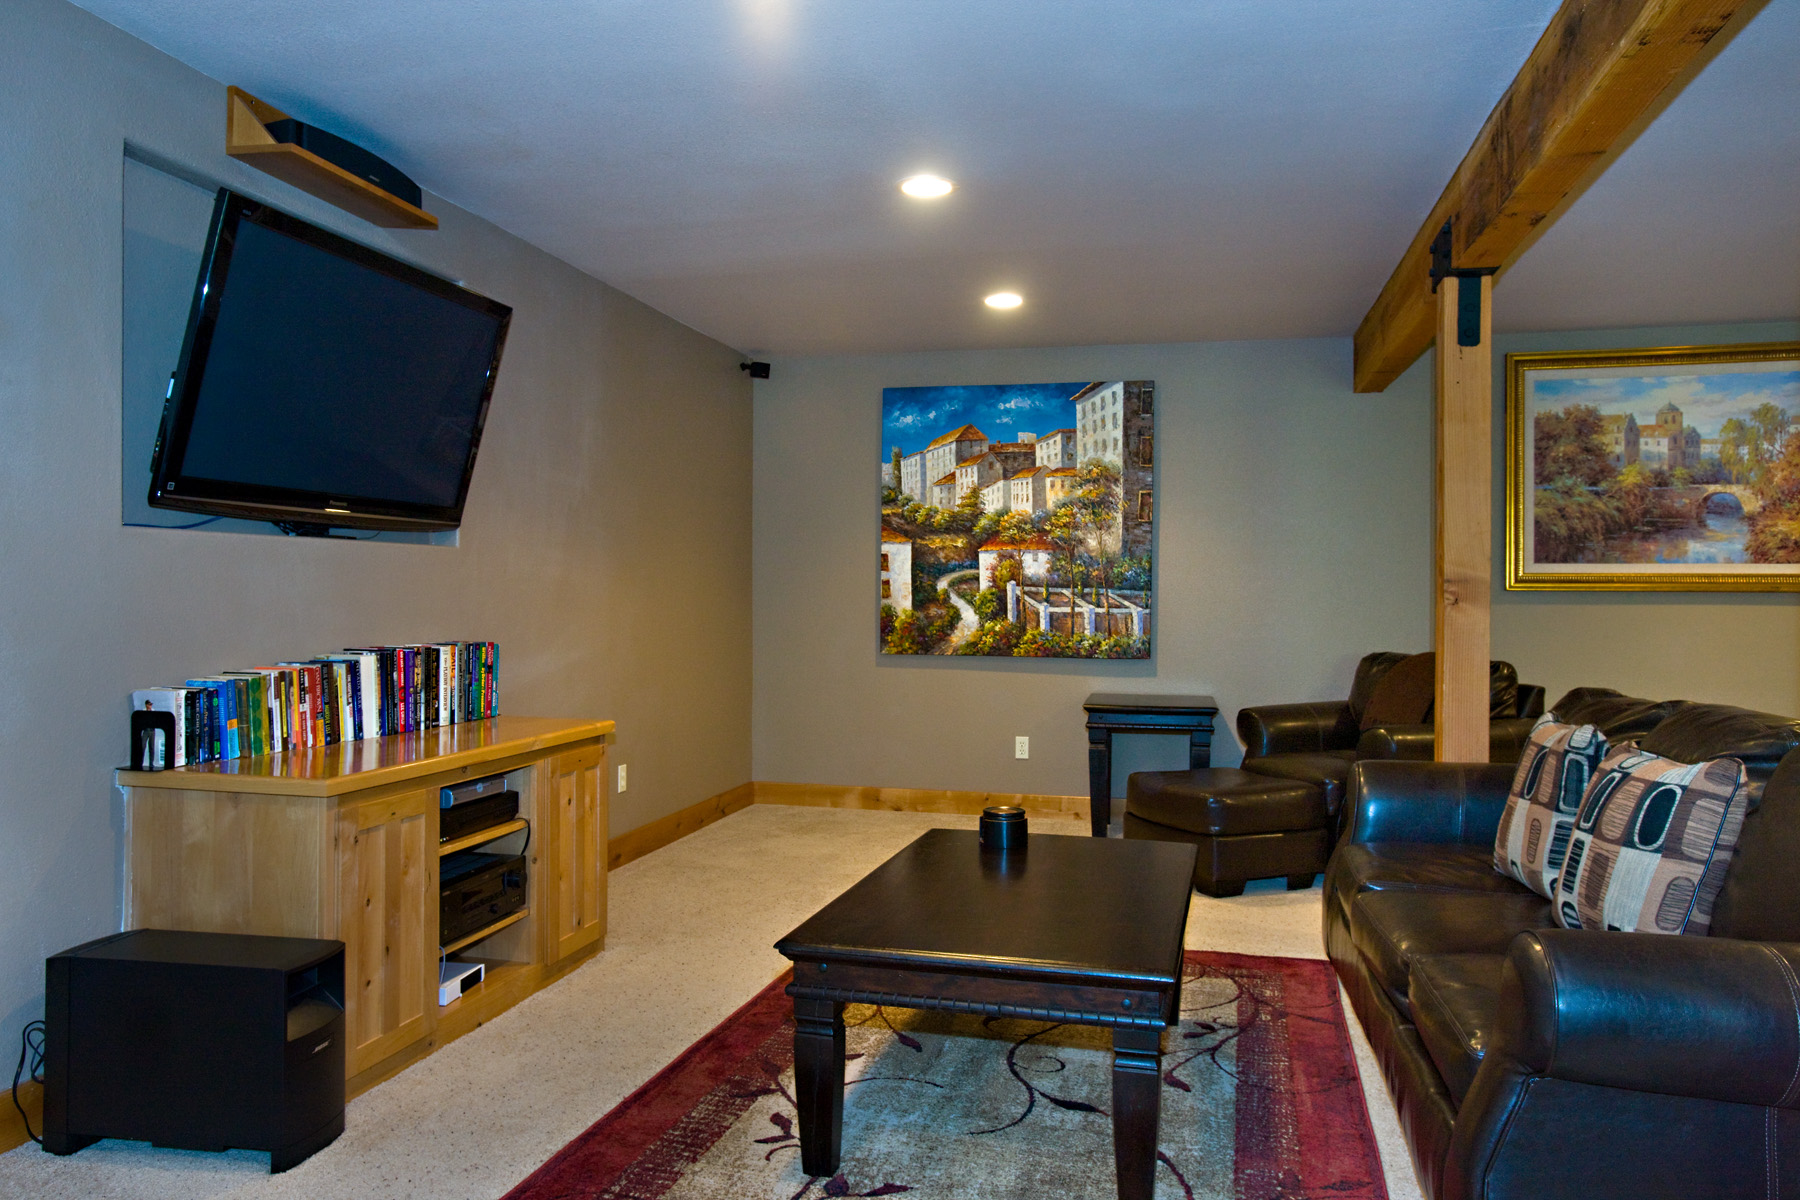 The downstairs media room with large flat screen TV, leather sof